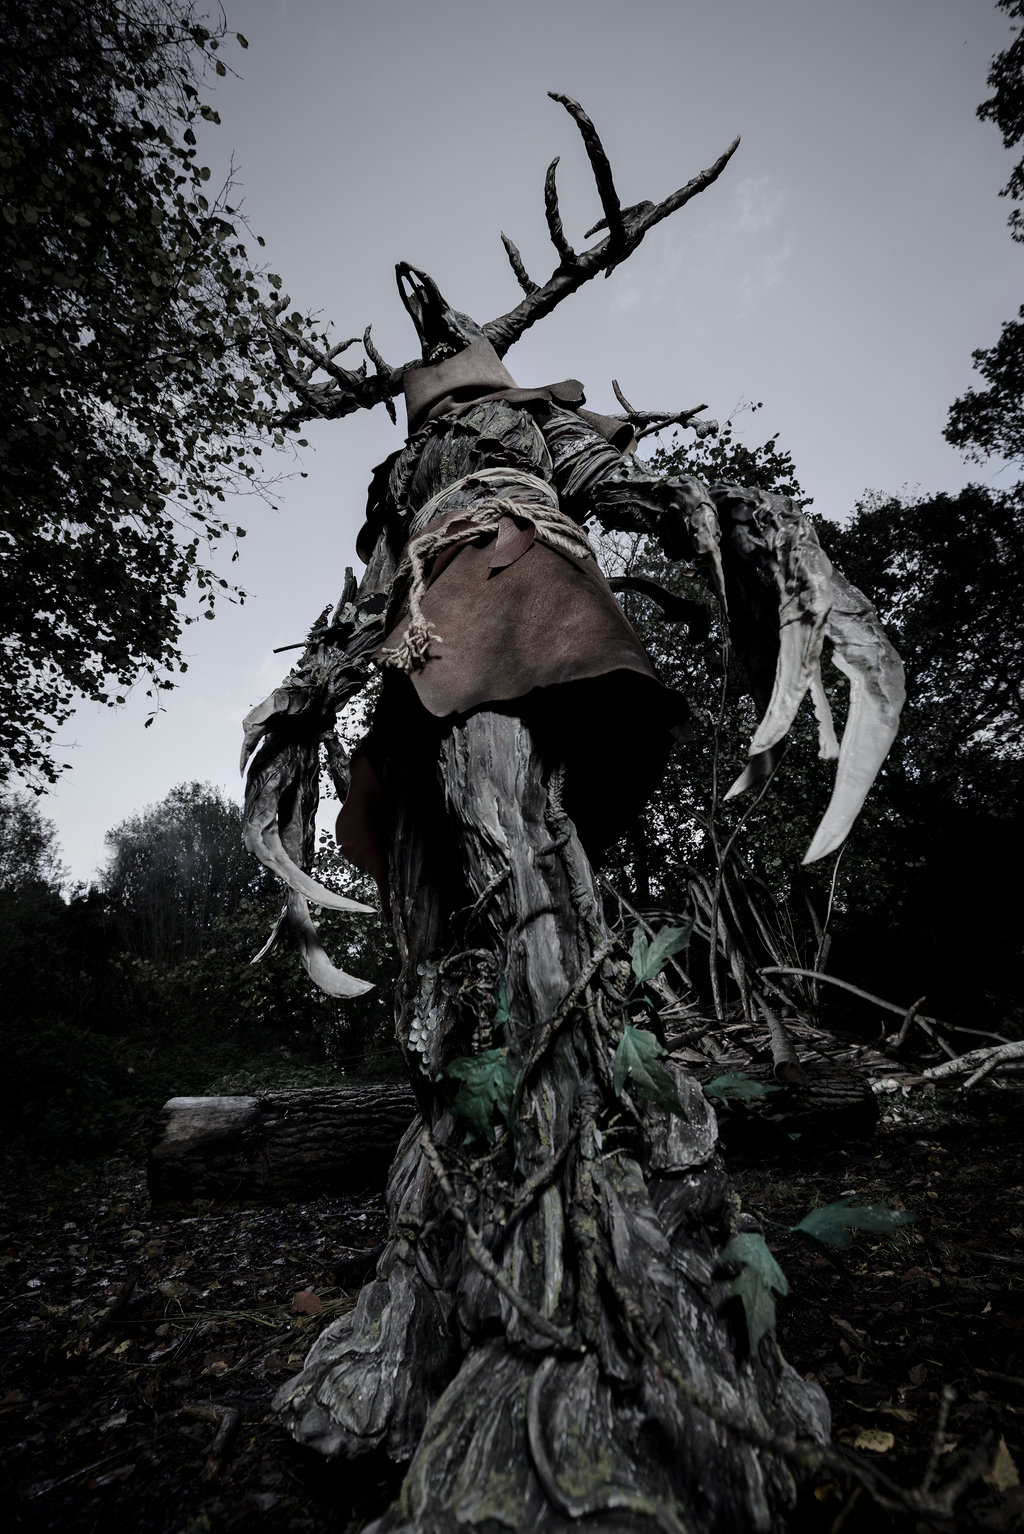 The Witcher 3 3d Wallpaper Creepy Leshen Costume From The Witcher 3 171 Adafruit